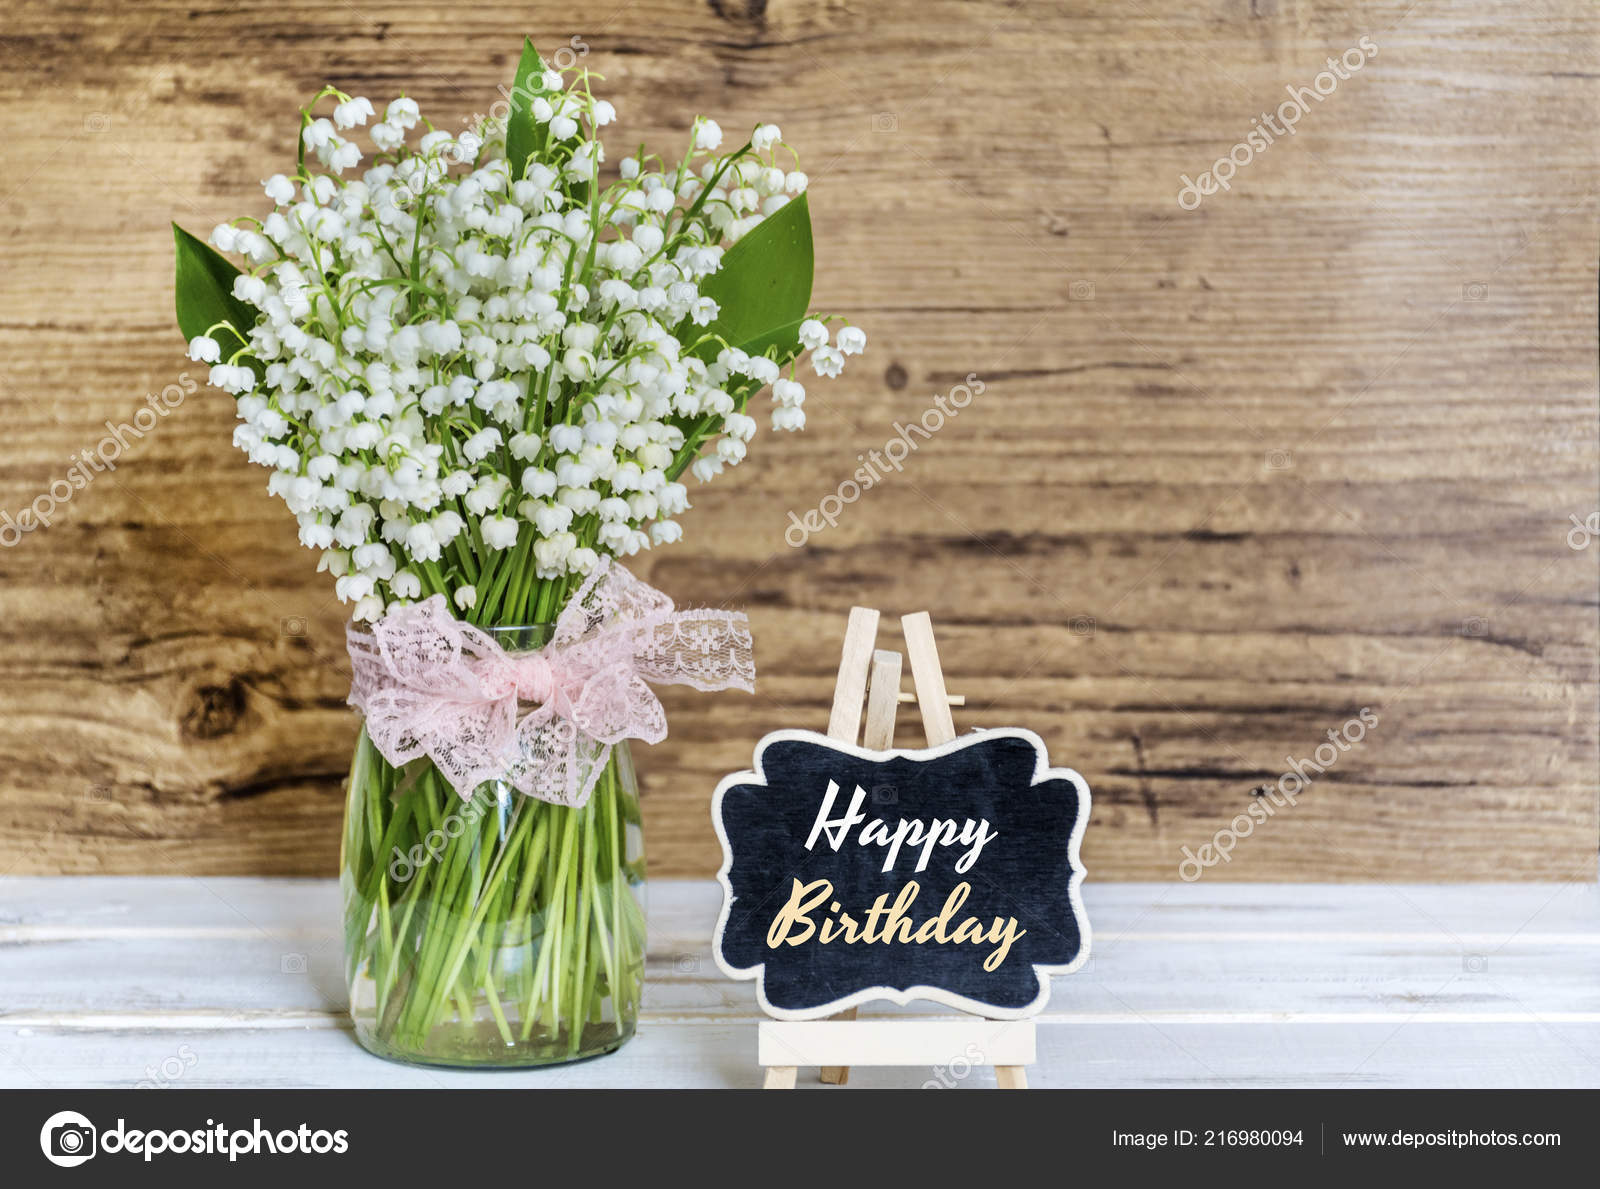 Images Happy Birthday With Lily Of The Valley Bouquet Lily Valley Flowers Happy Birthday Greeting Card Stock Photo C Brnmanzurova Gmail Com 216980094